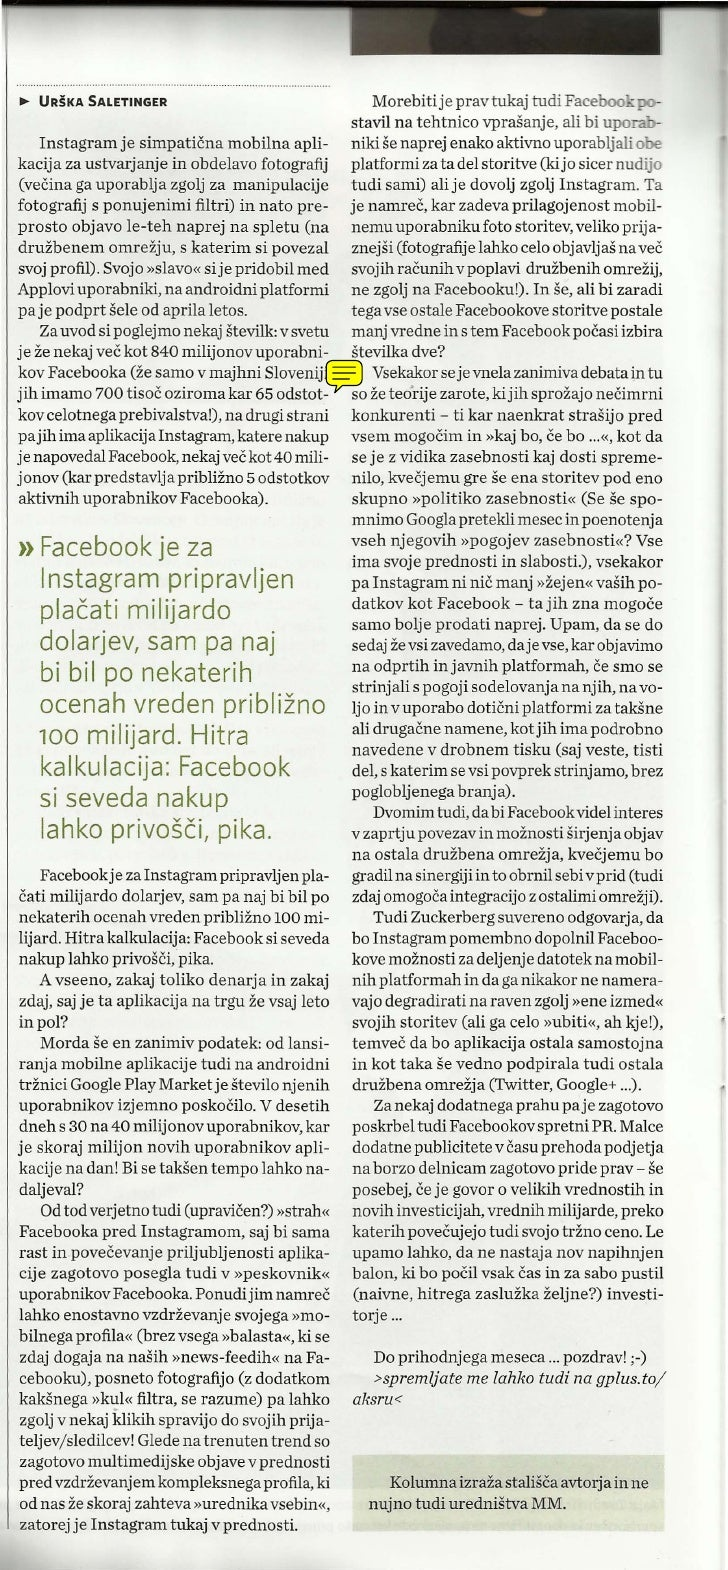 Je instagram vreden milijarde dolarjev?_Marketing Magazin_maj2012_st.372_str.16